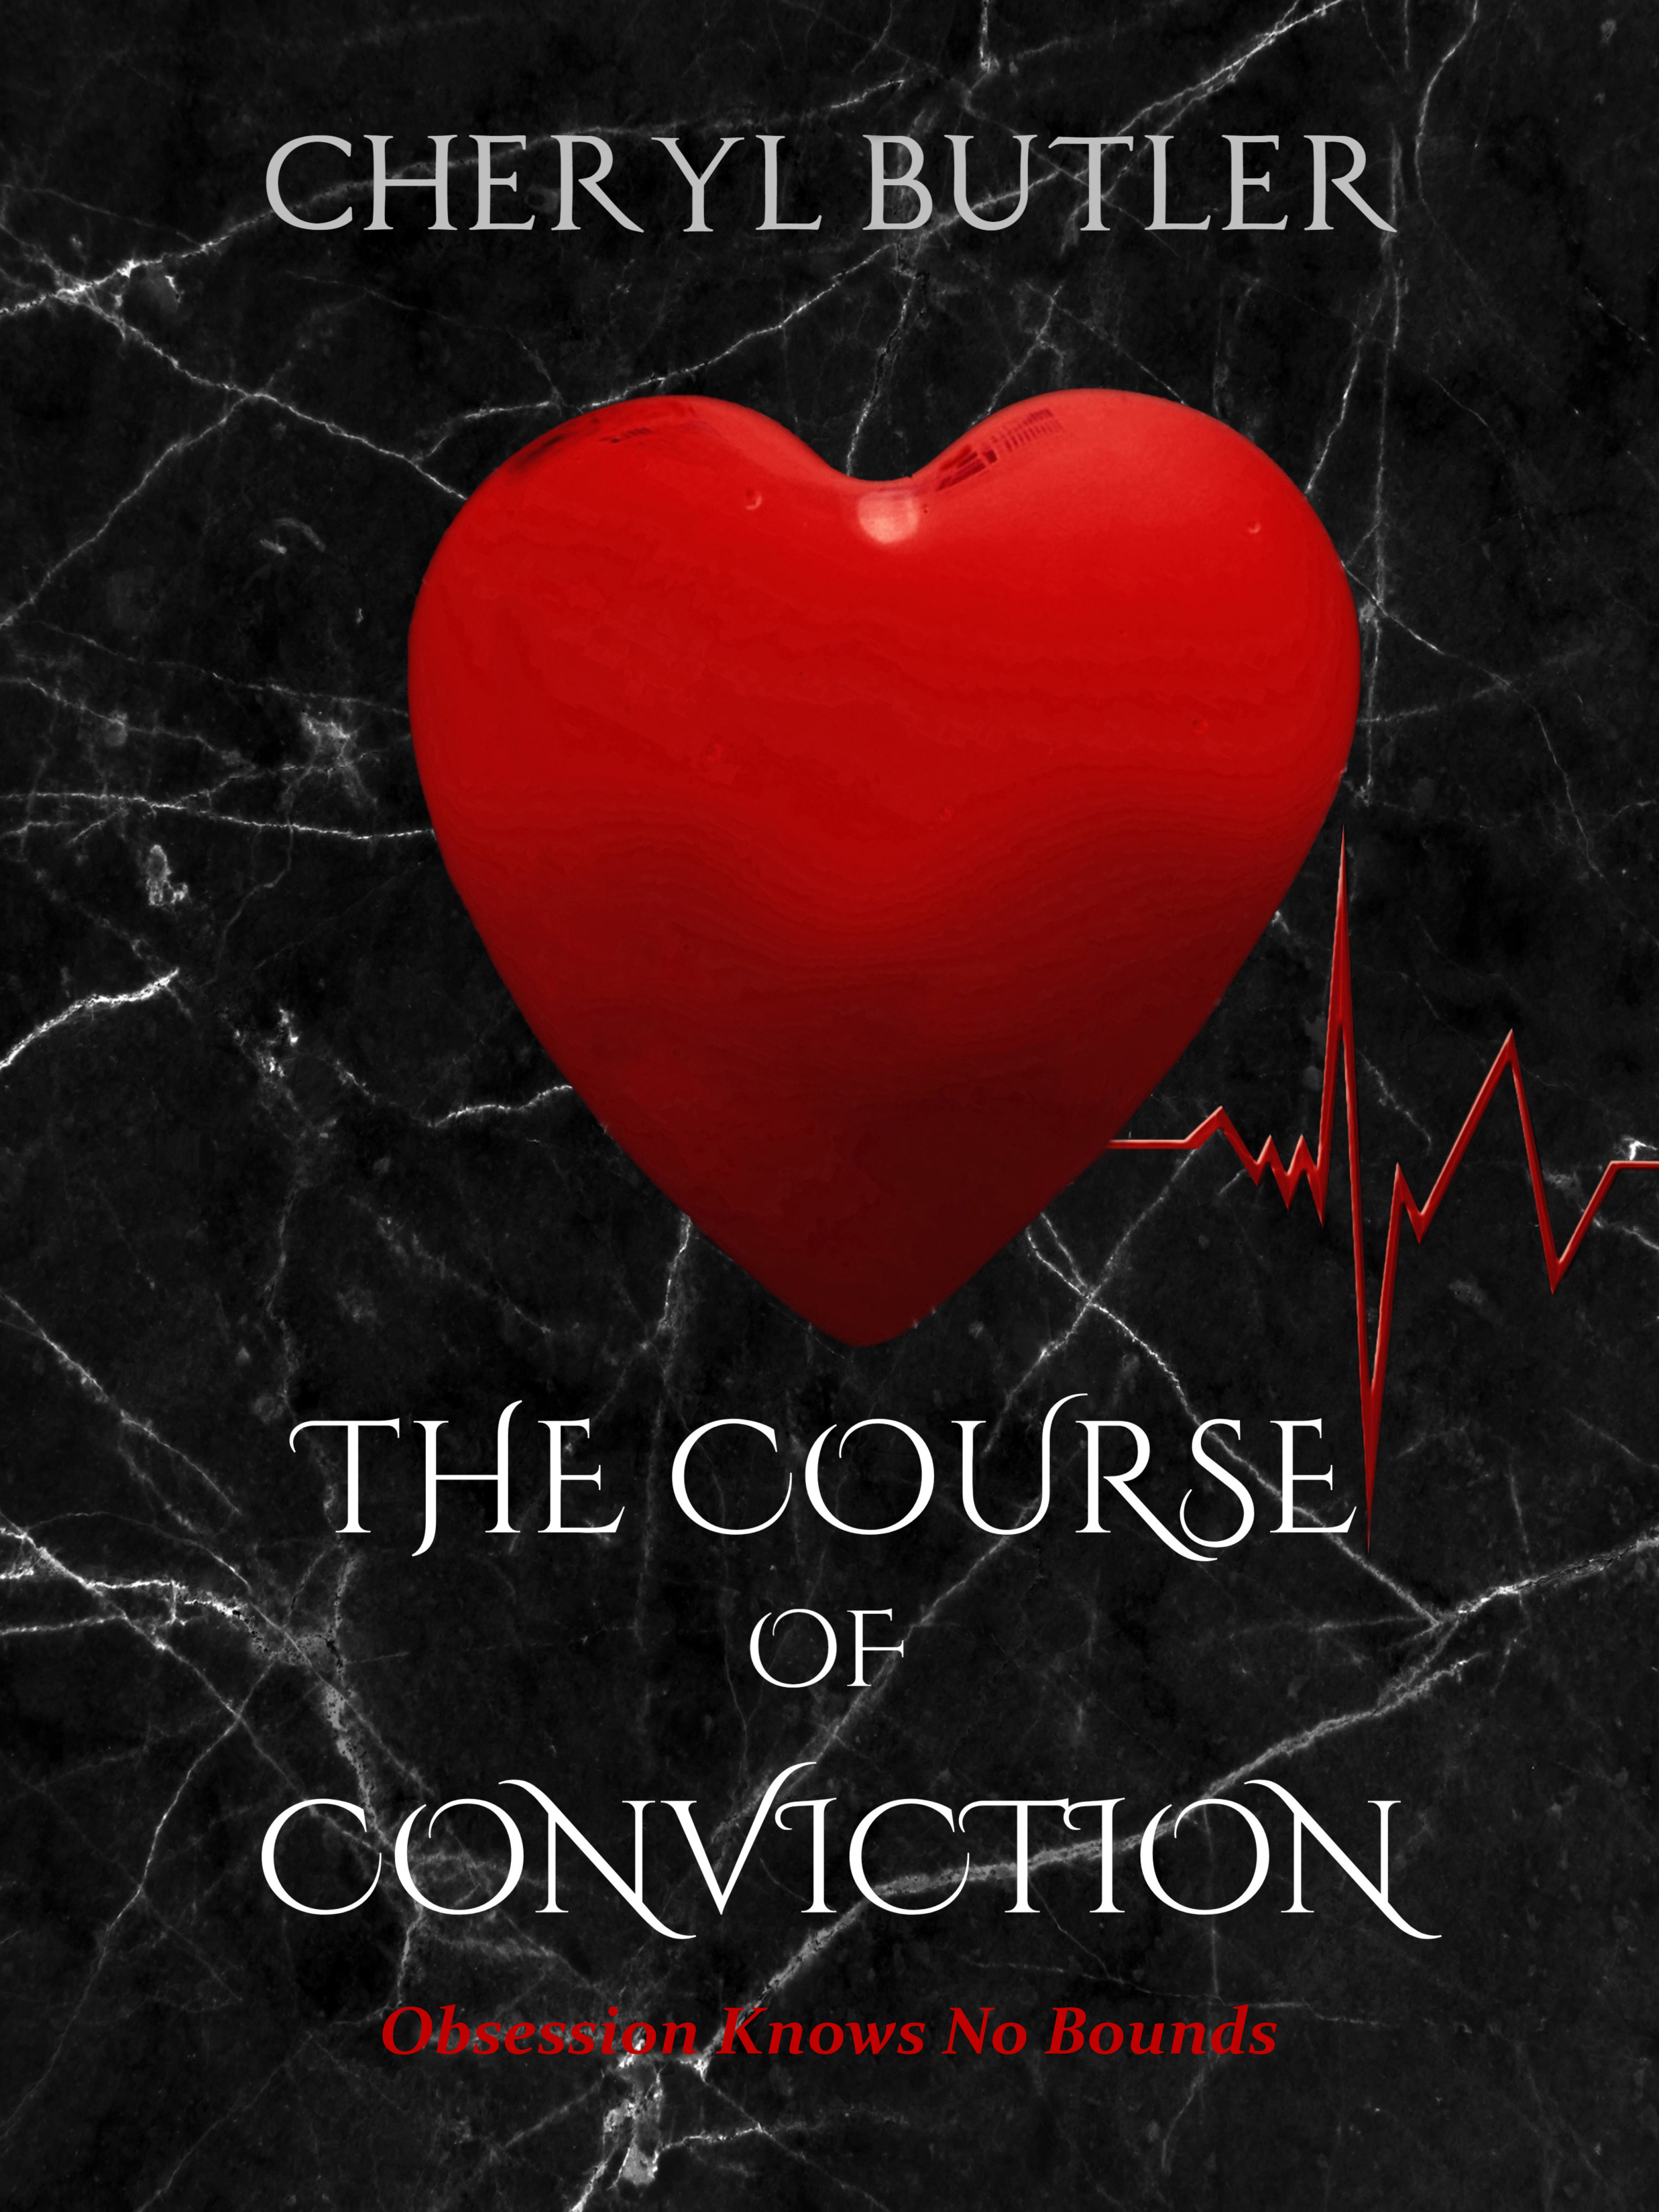 The Course Of Conviction's Ebook Image